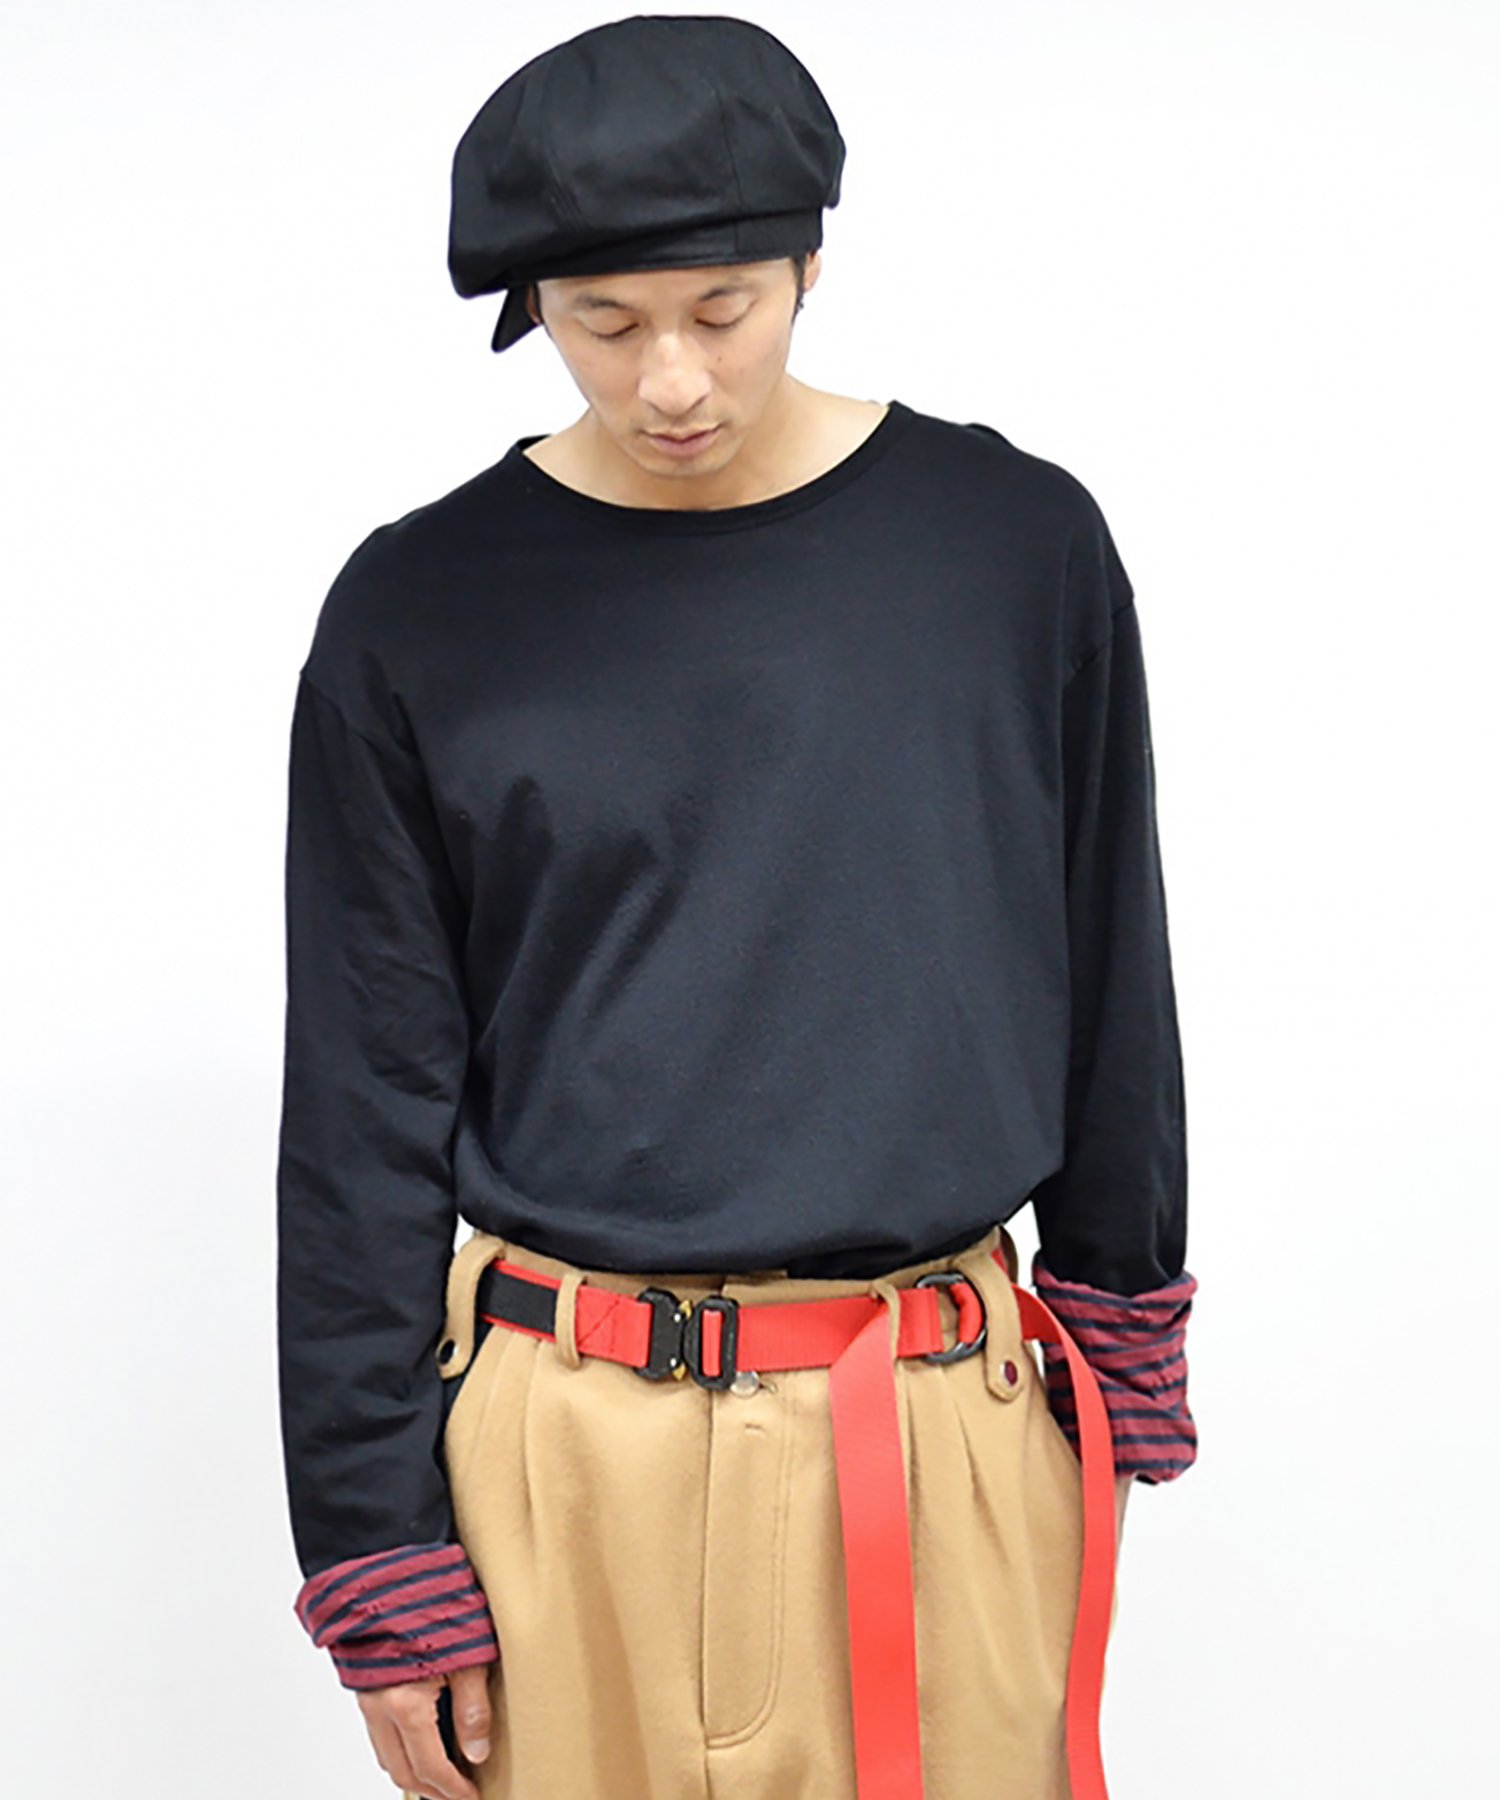 dirtytoy(ダーティートイ)Boarder & Plane Reversible Long Sleeve / Red × Deep Navy